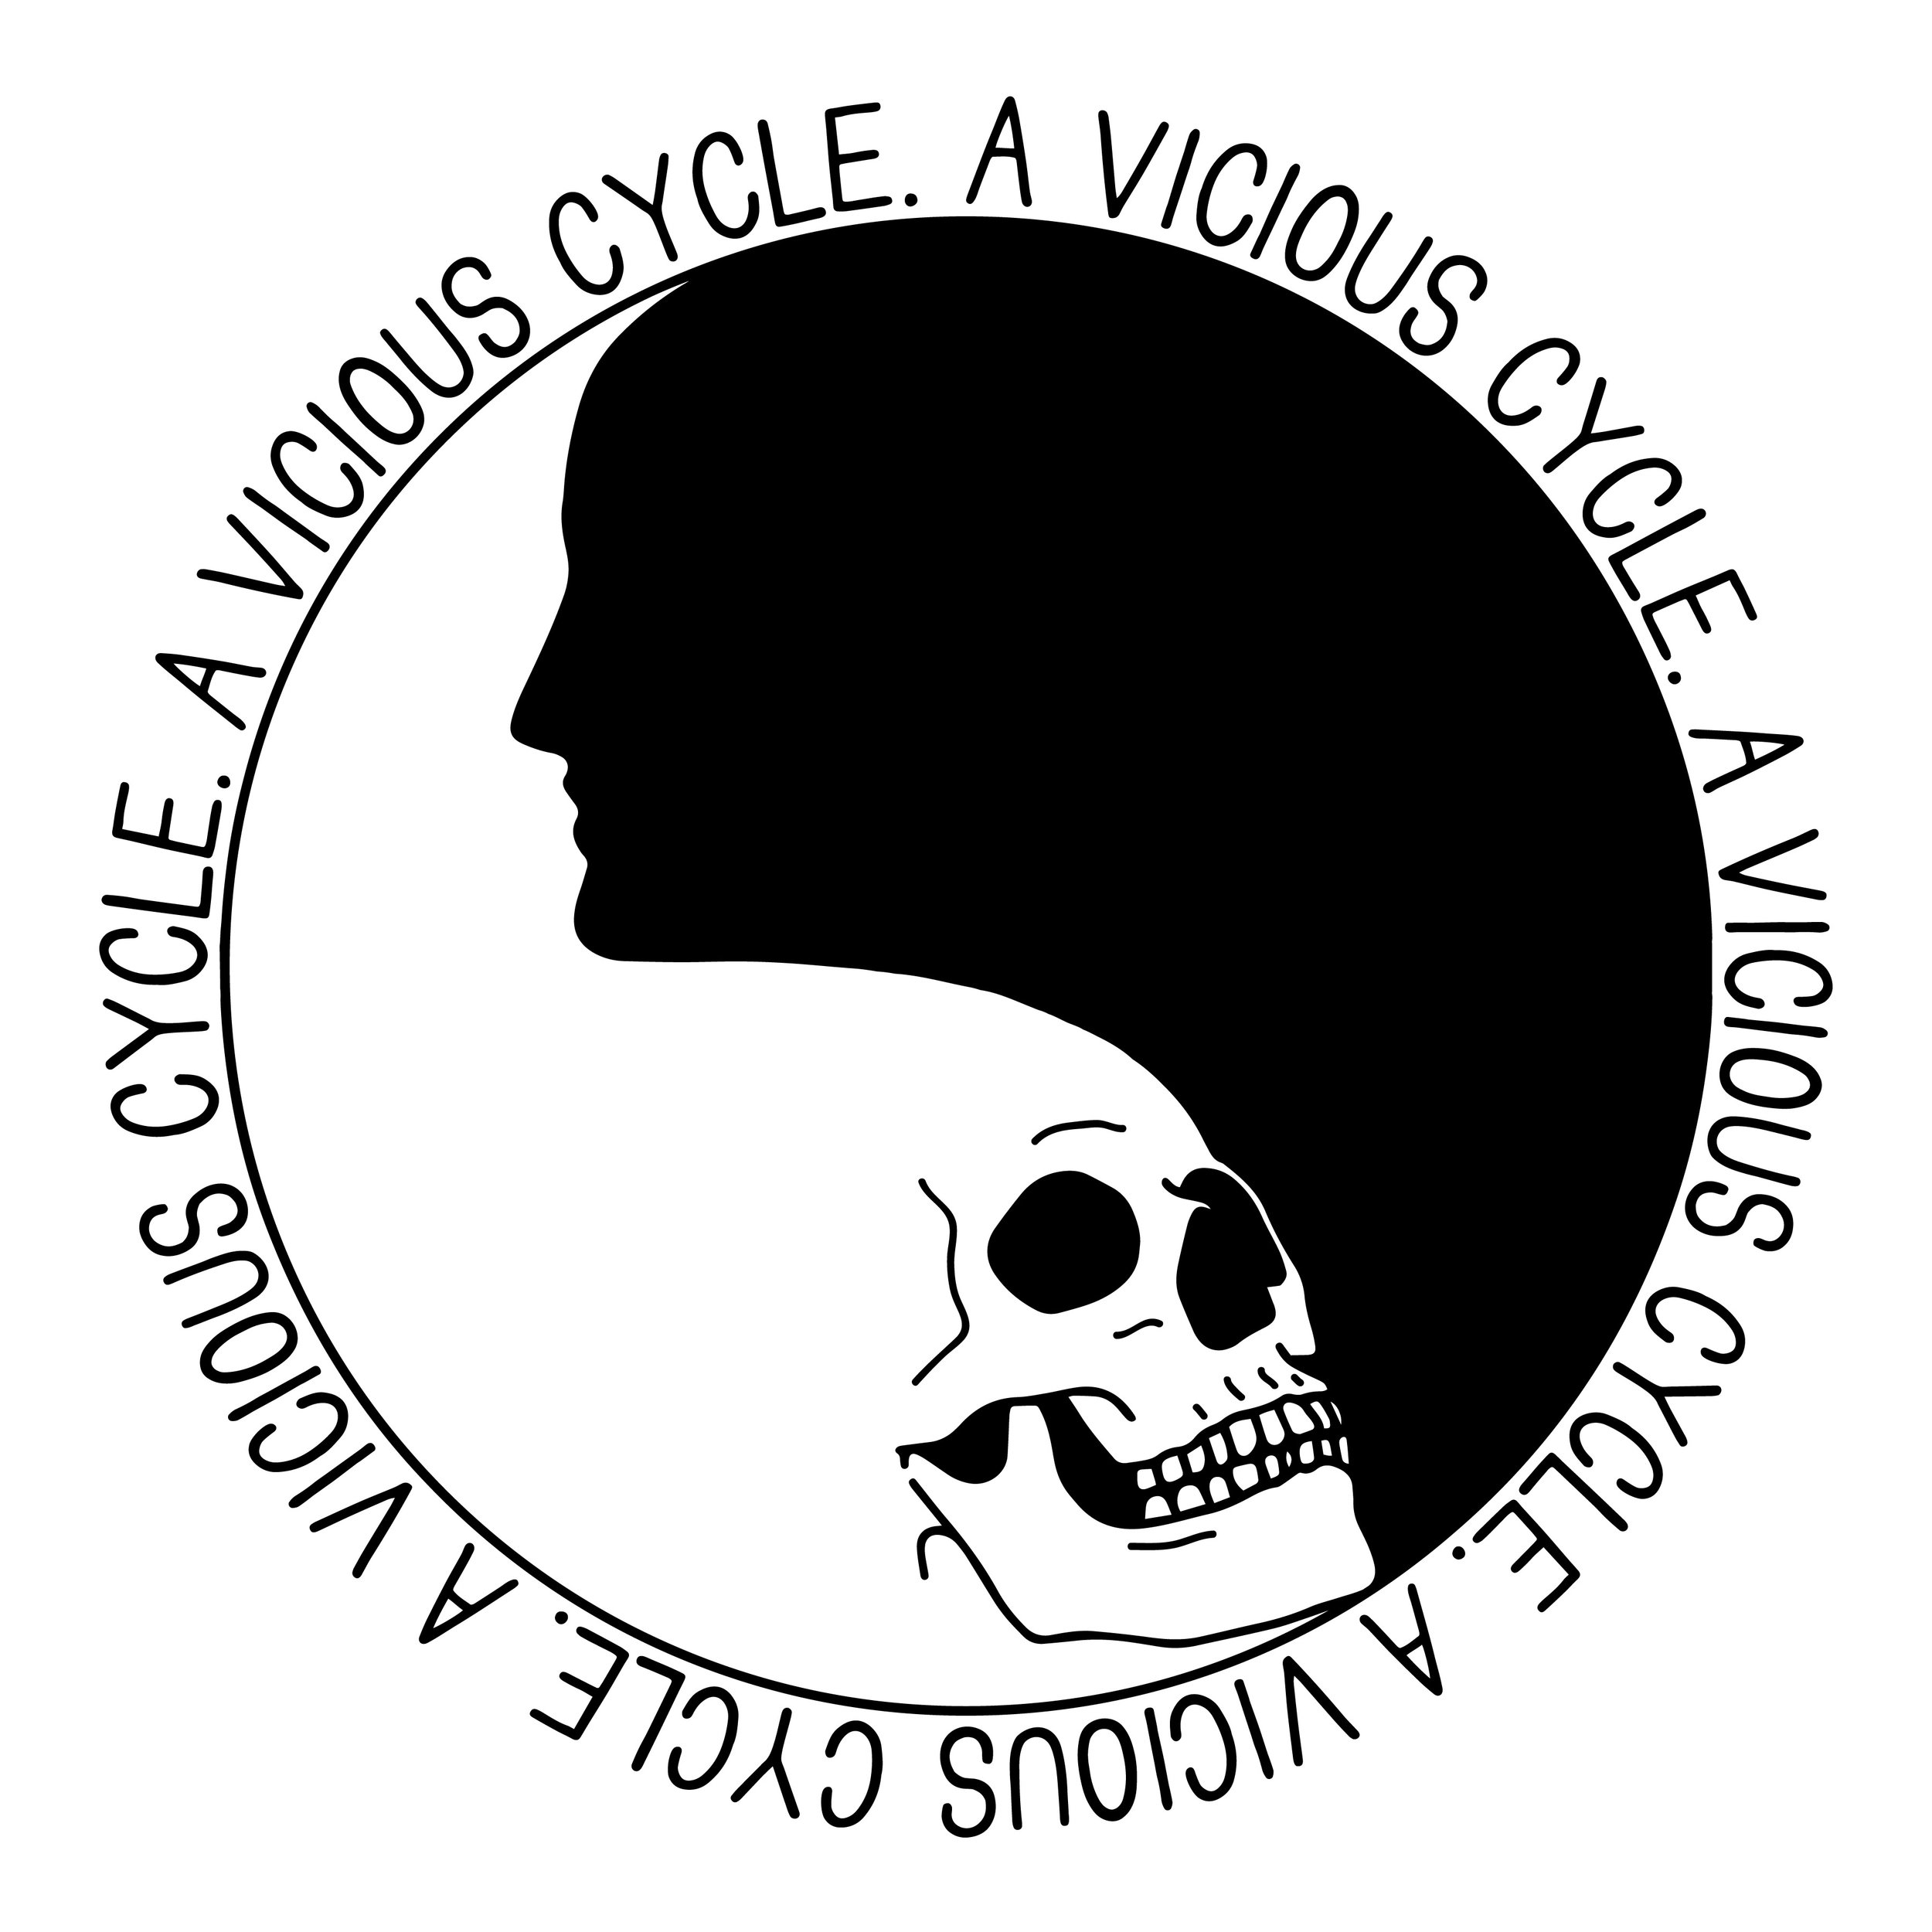 viciouscycle-01.jpg